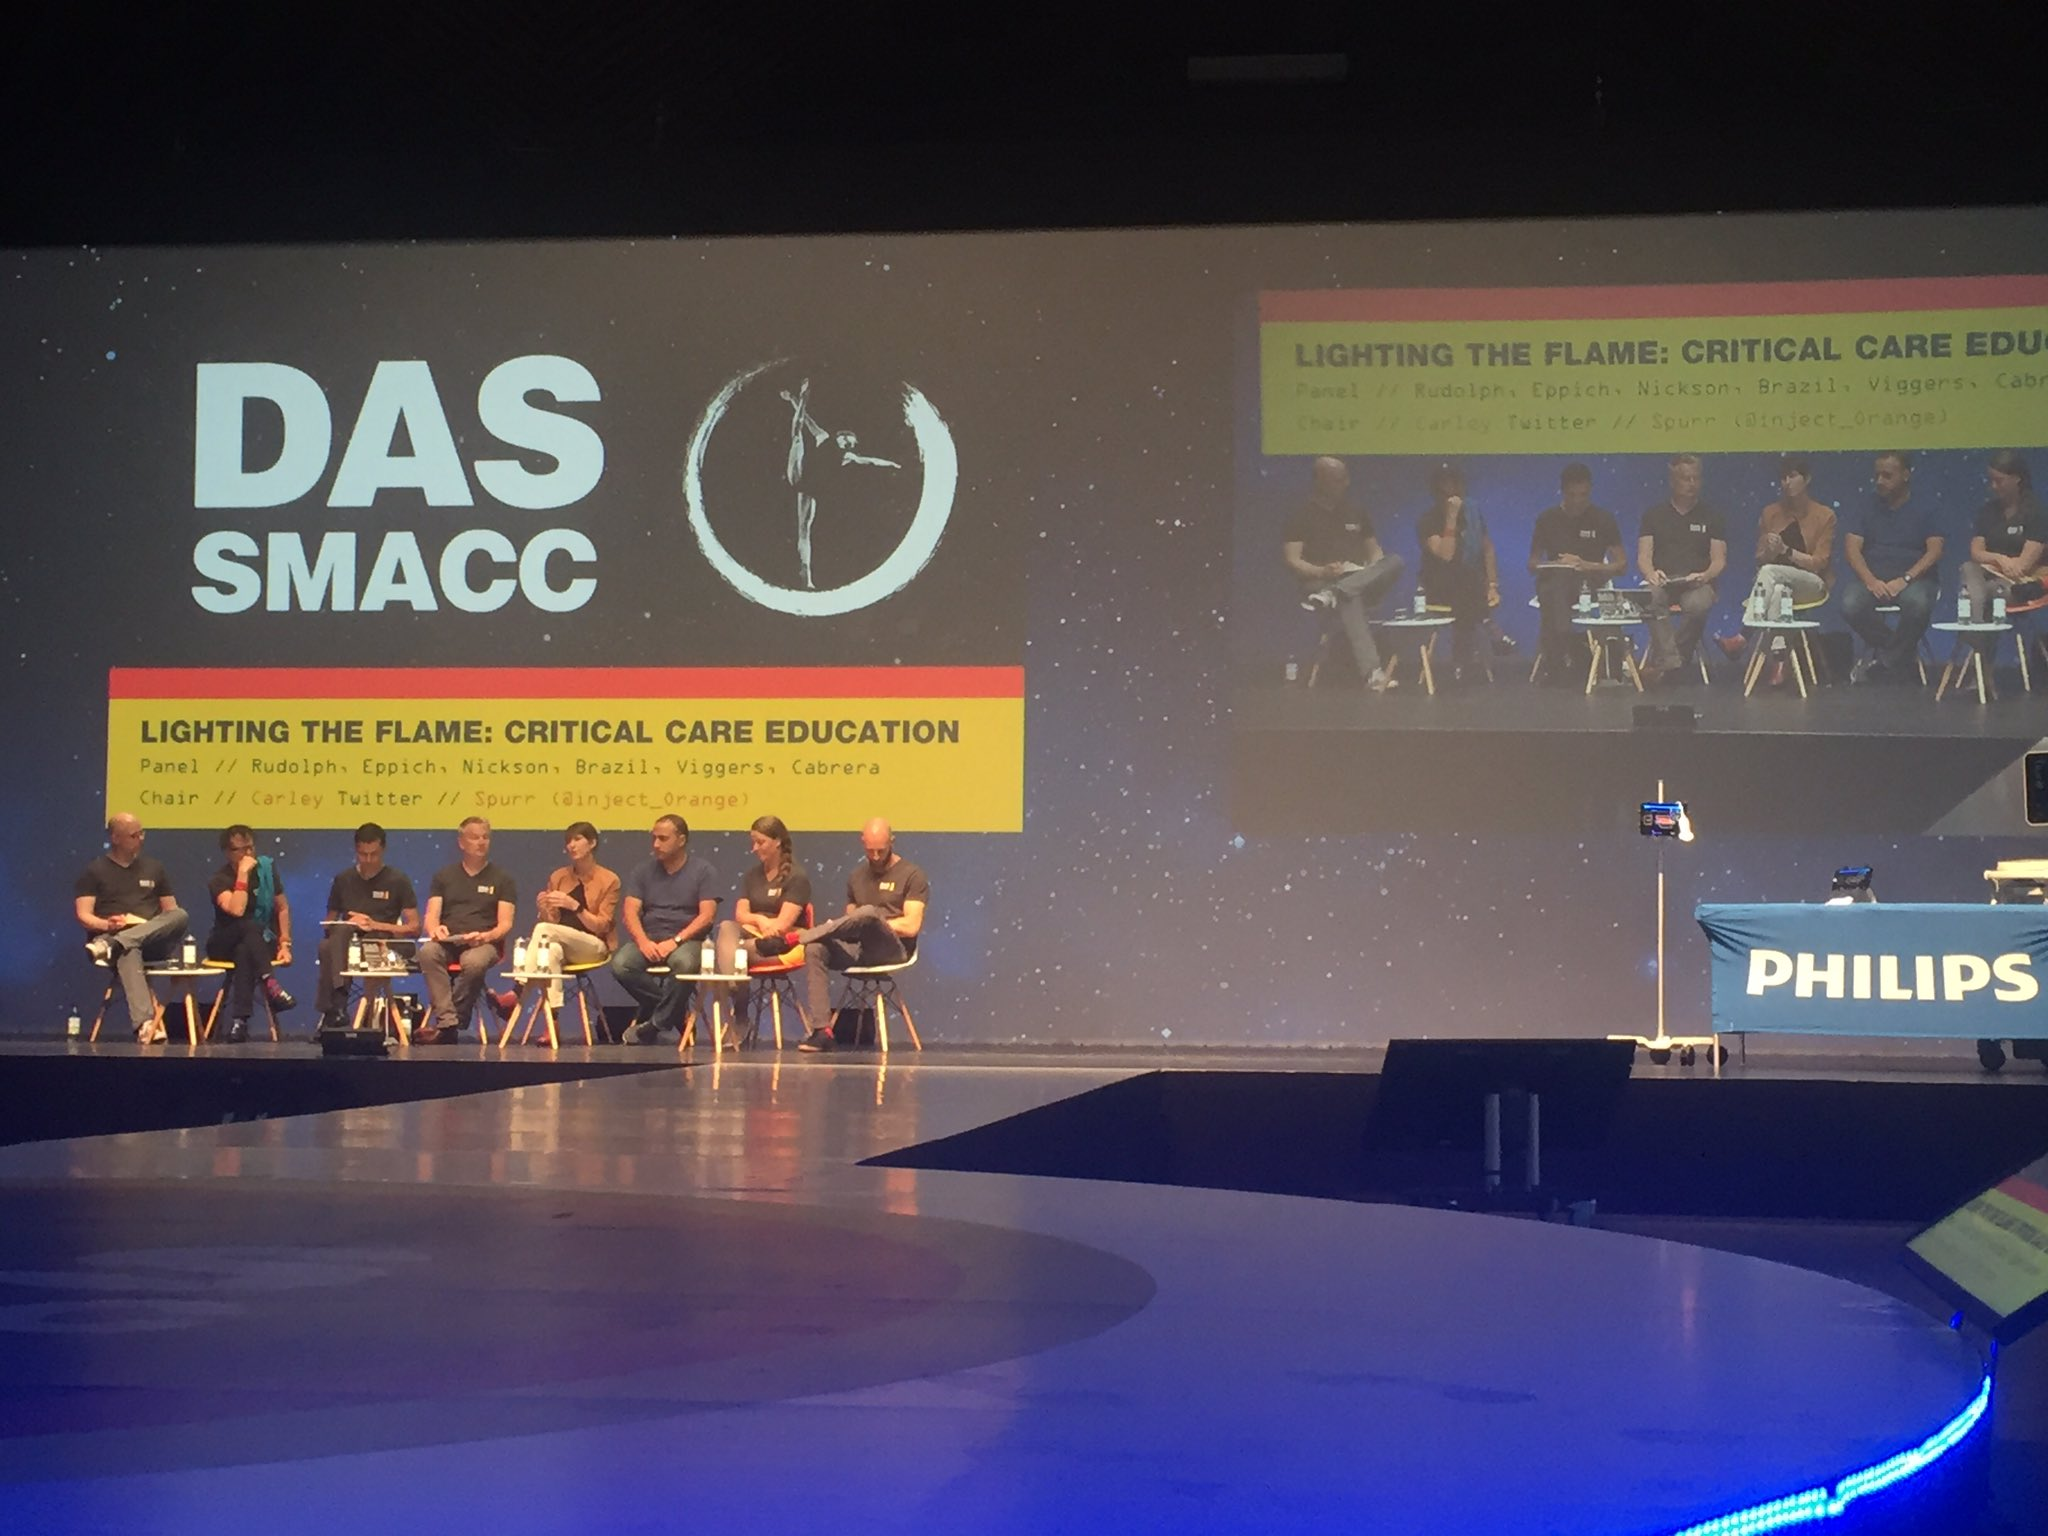 An exciting panel on the future of #meded at #dasSMACC. Awesome educators and some genuinely lovely human beings. https://t.co/kD2kKOdYDM